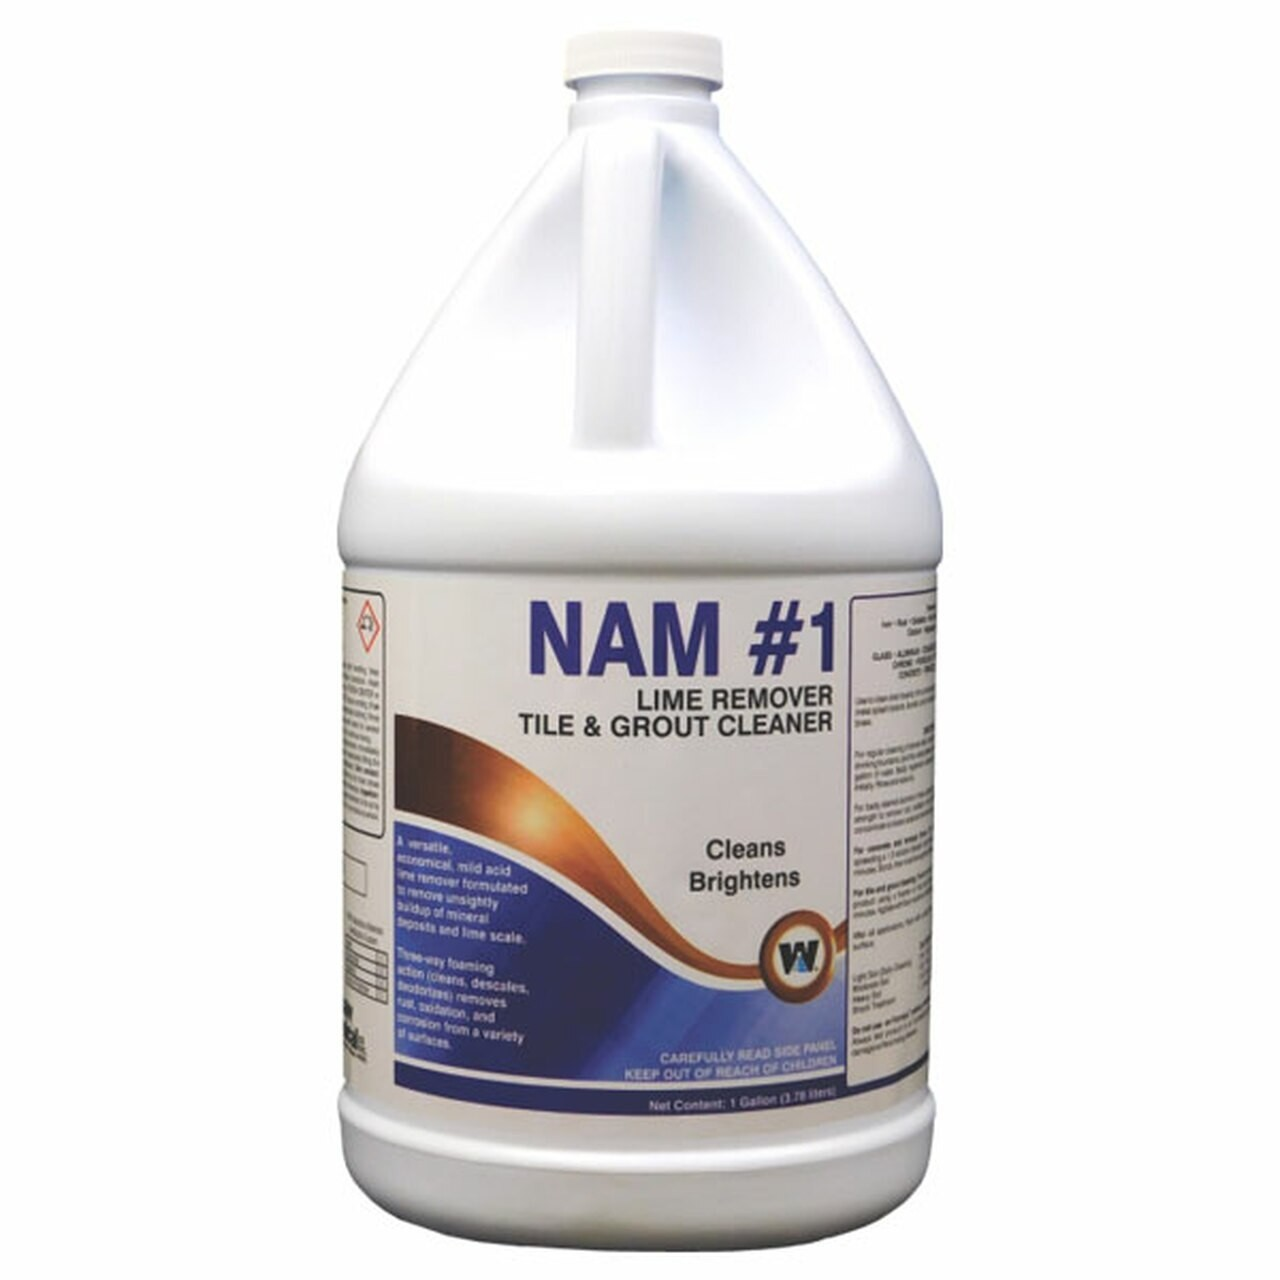 NAM #1 21504-0000004 Lime Scale Remover, Tile & Grout Cleaner, 4/Gallons/Case